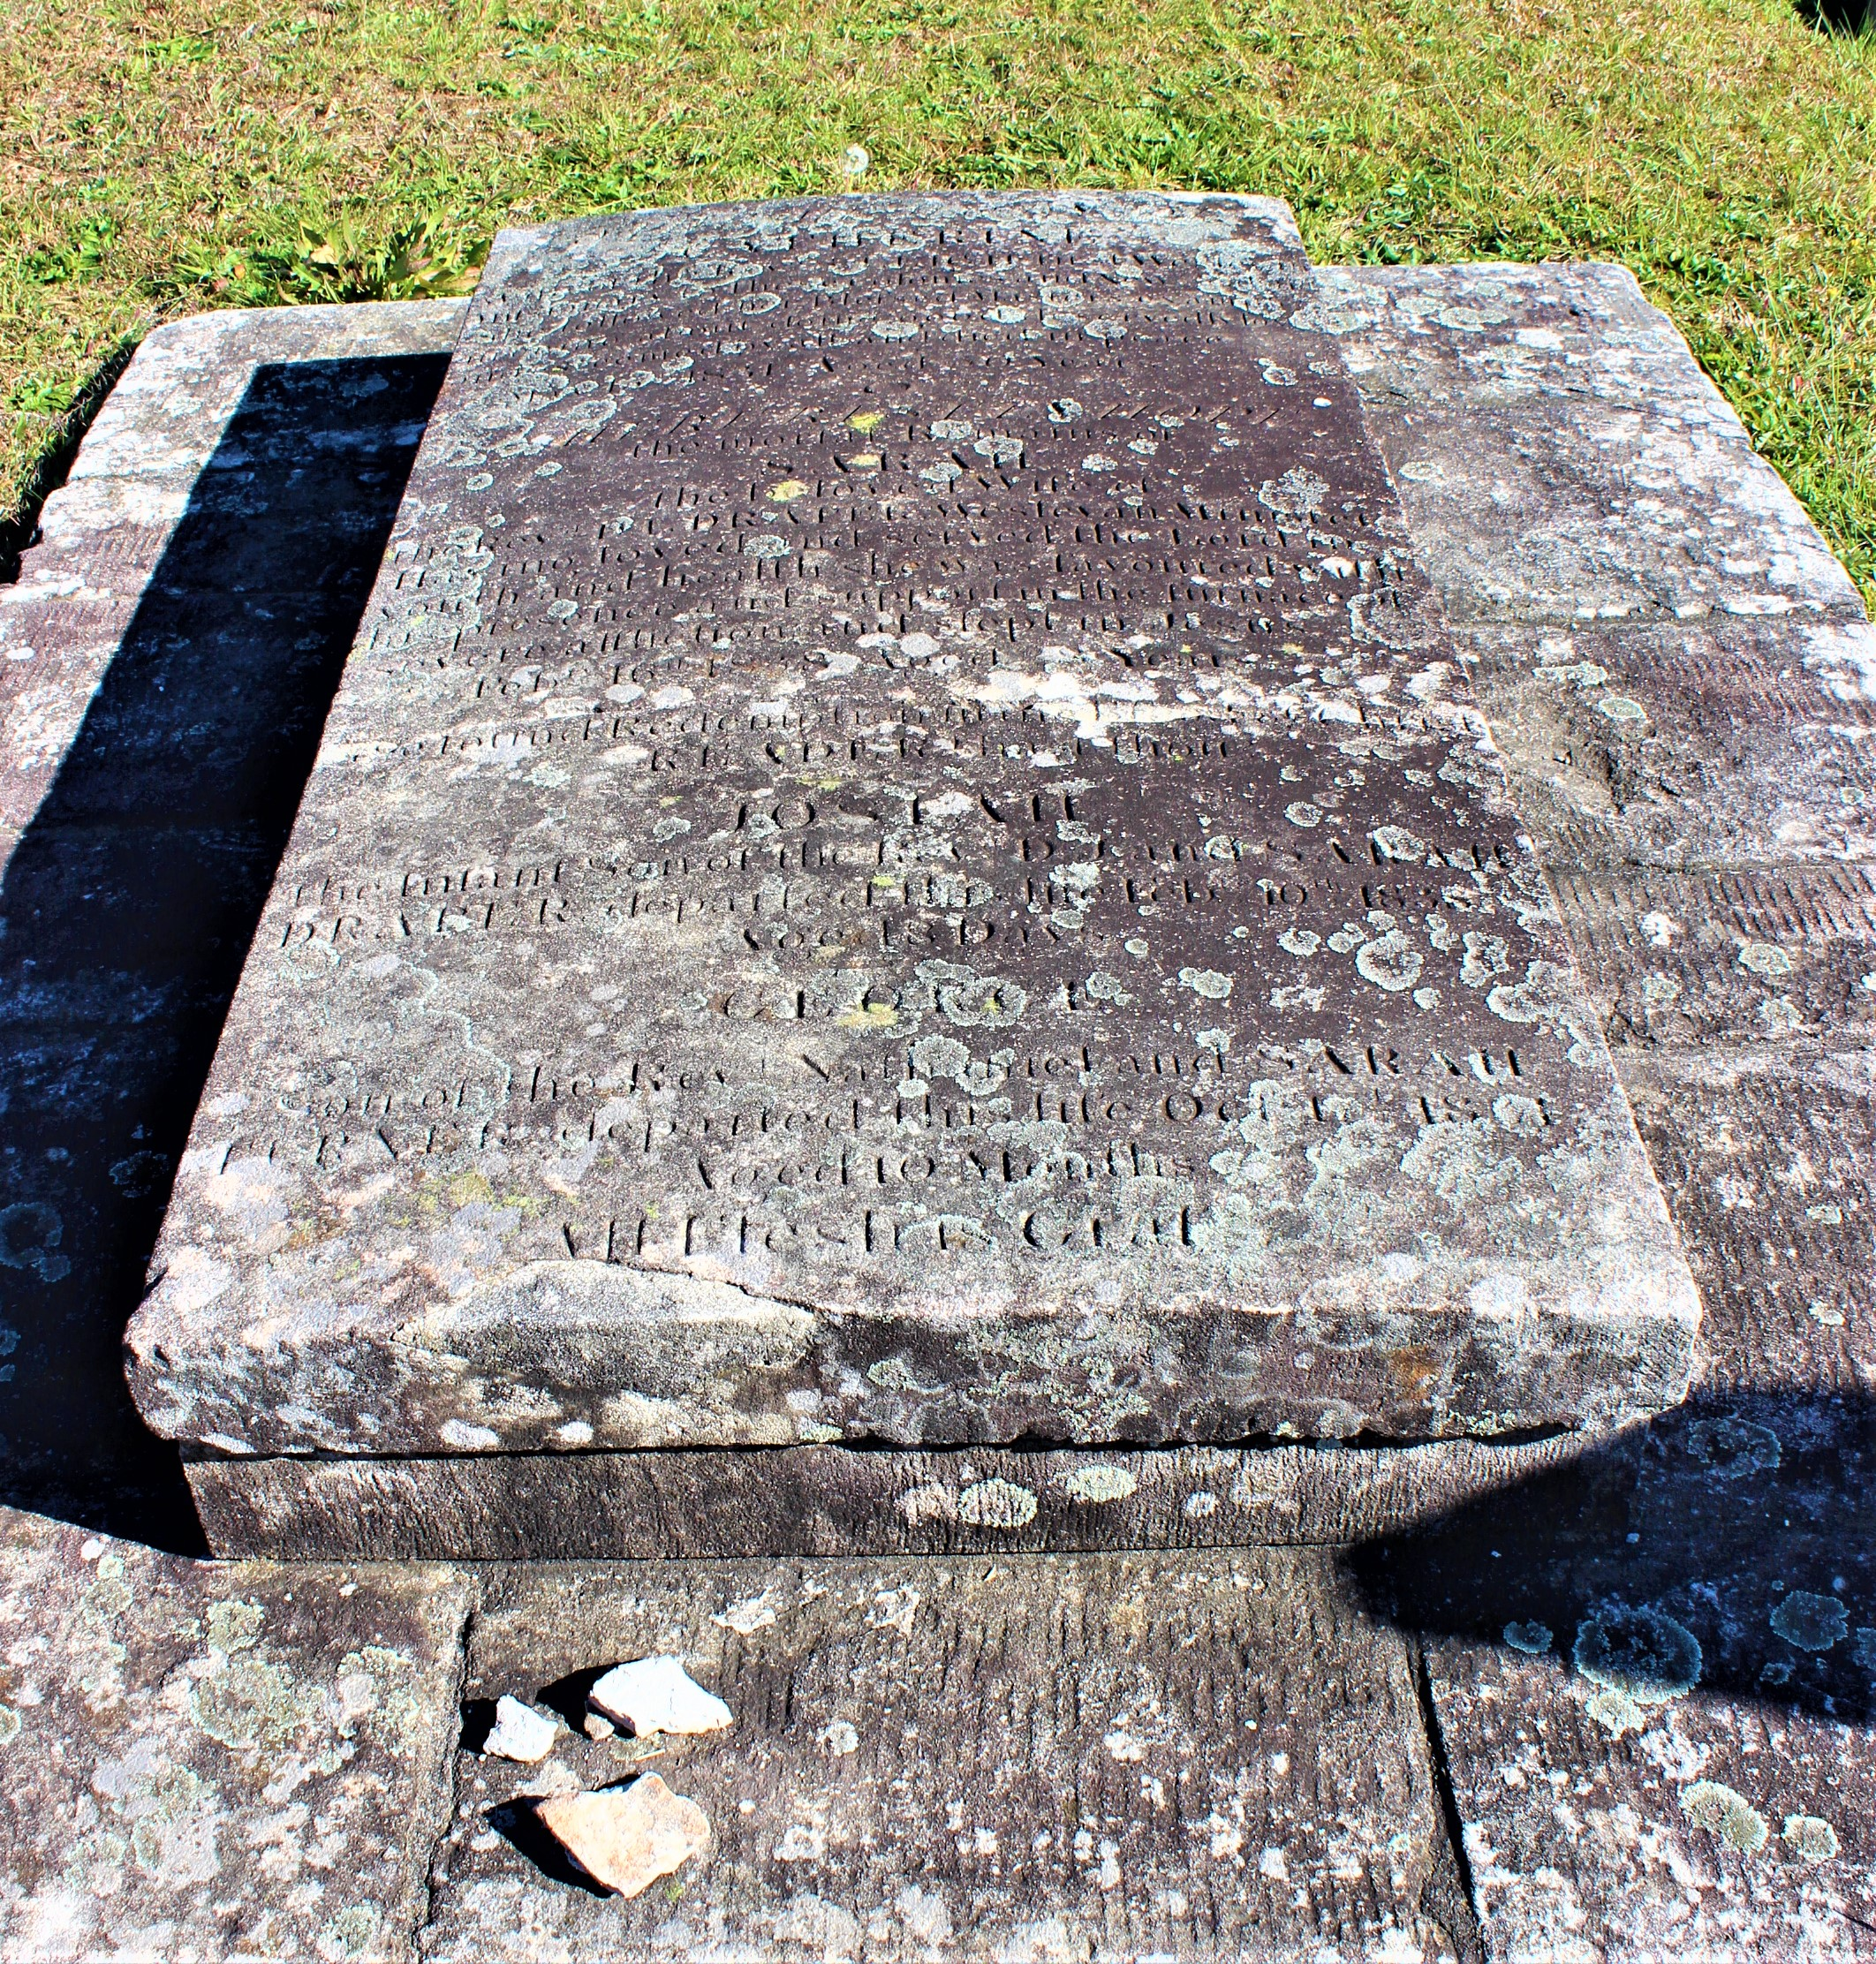 Catherine Leigh, Reverend Samuel Leigh, Wesleyan, Missionary, Missionary's Wife, St. John's Cemetery Project, Parramatta, Old Parramattans